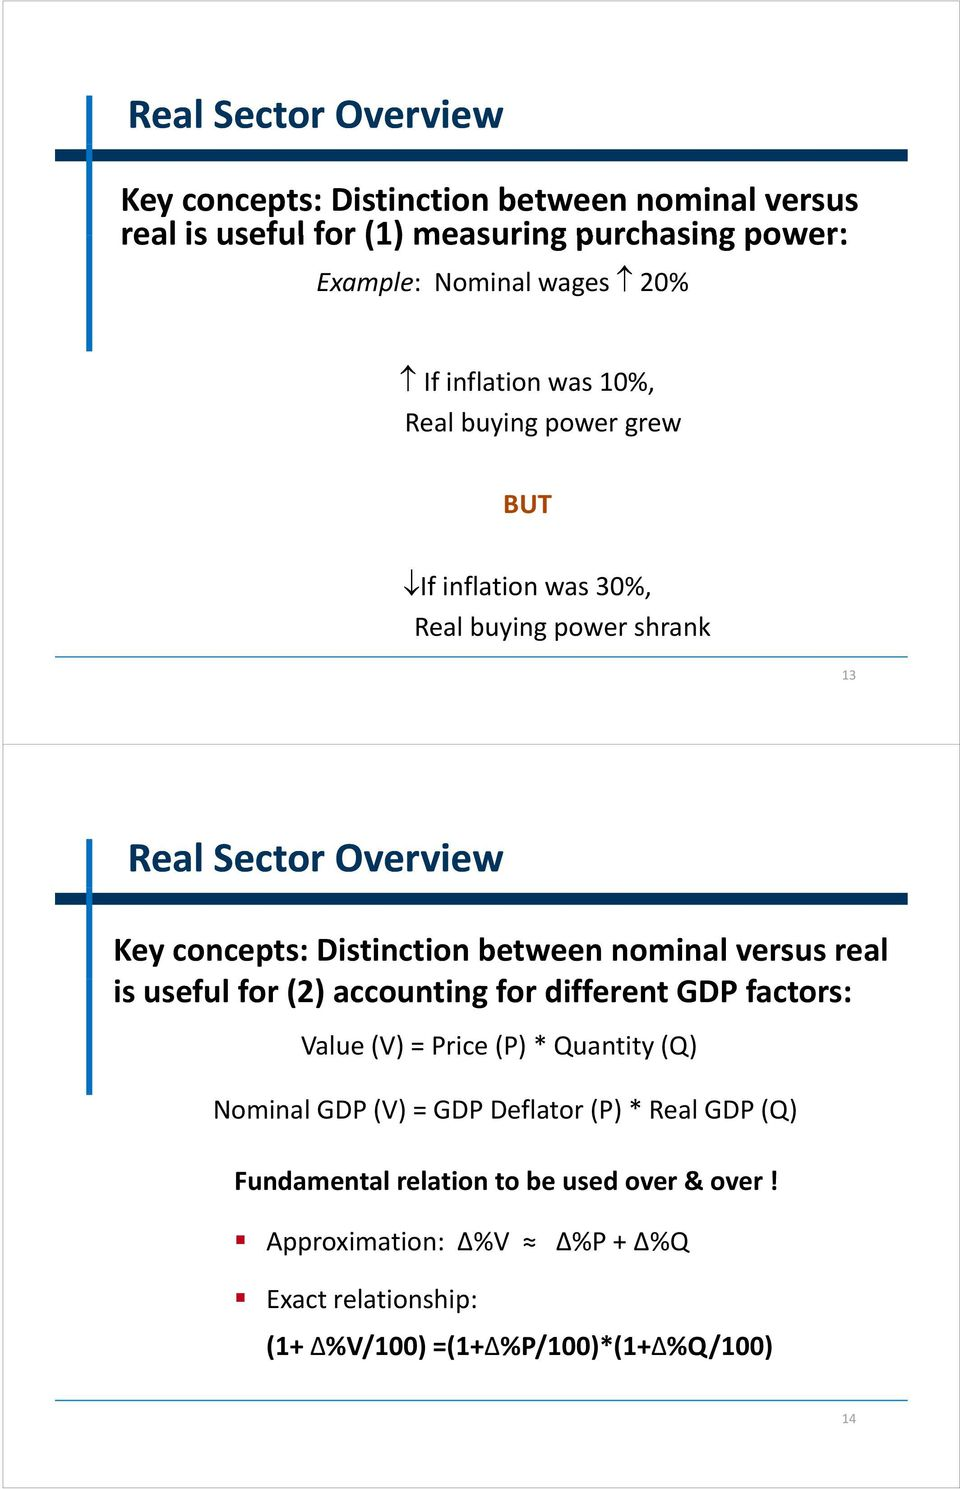 between nominal versus real is useful lf for (2) accounting for different GDP factors: Value (V) = Price (P) * Quantity (Q) Nominal GDP (V) = GDP